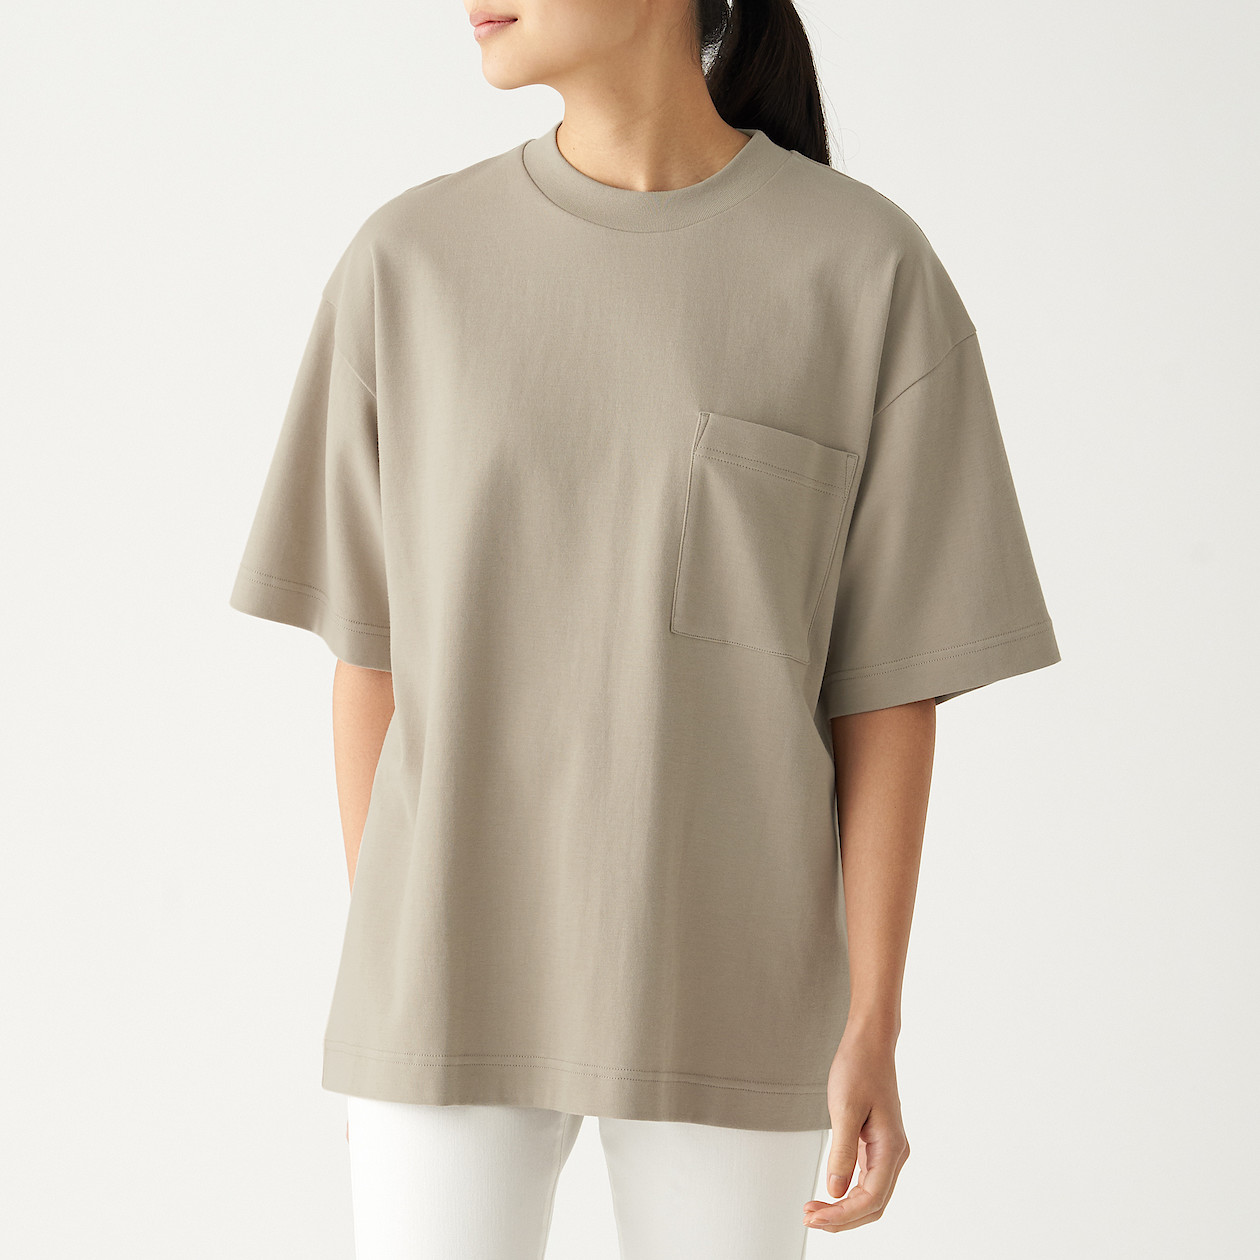 Ladies' Organic Cotton Oversized T-Shirt